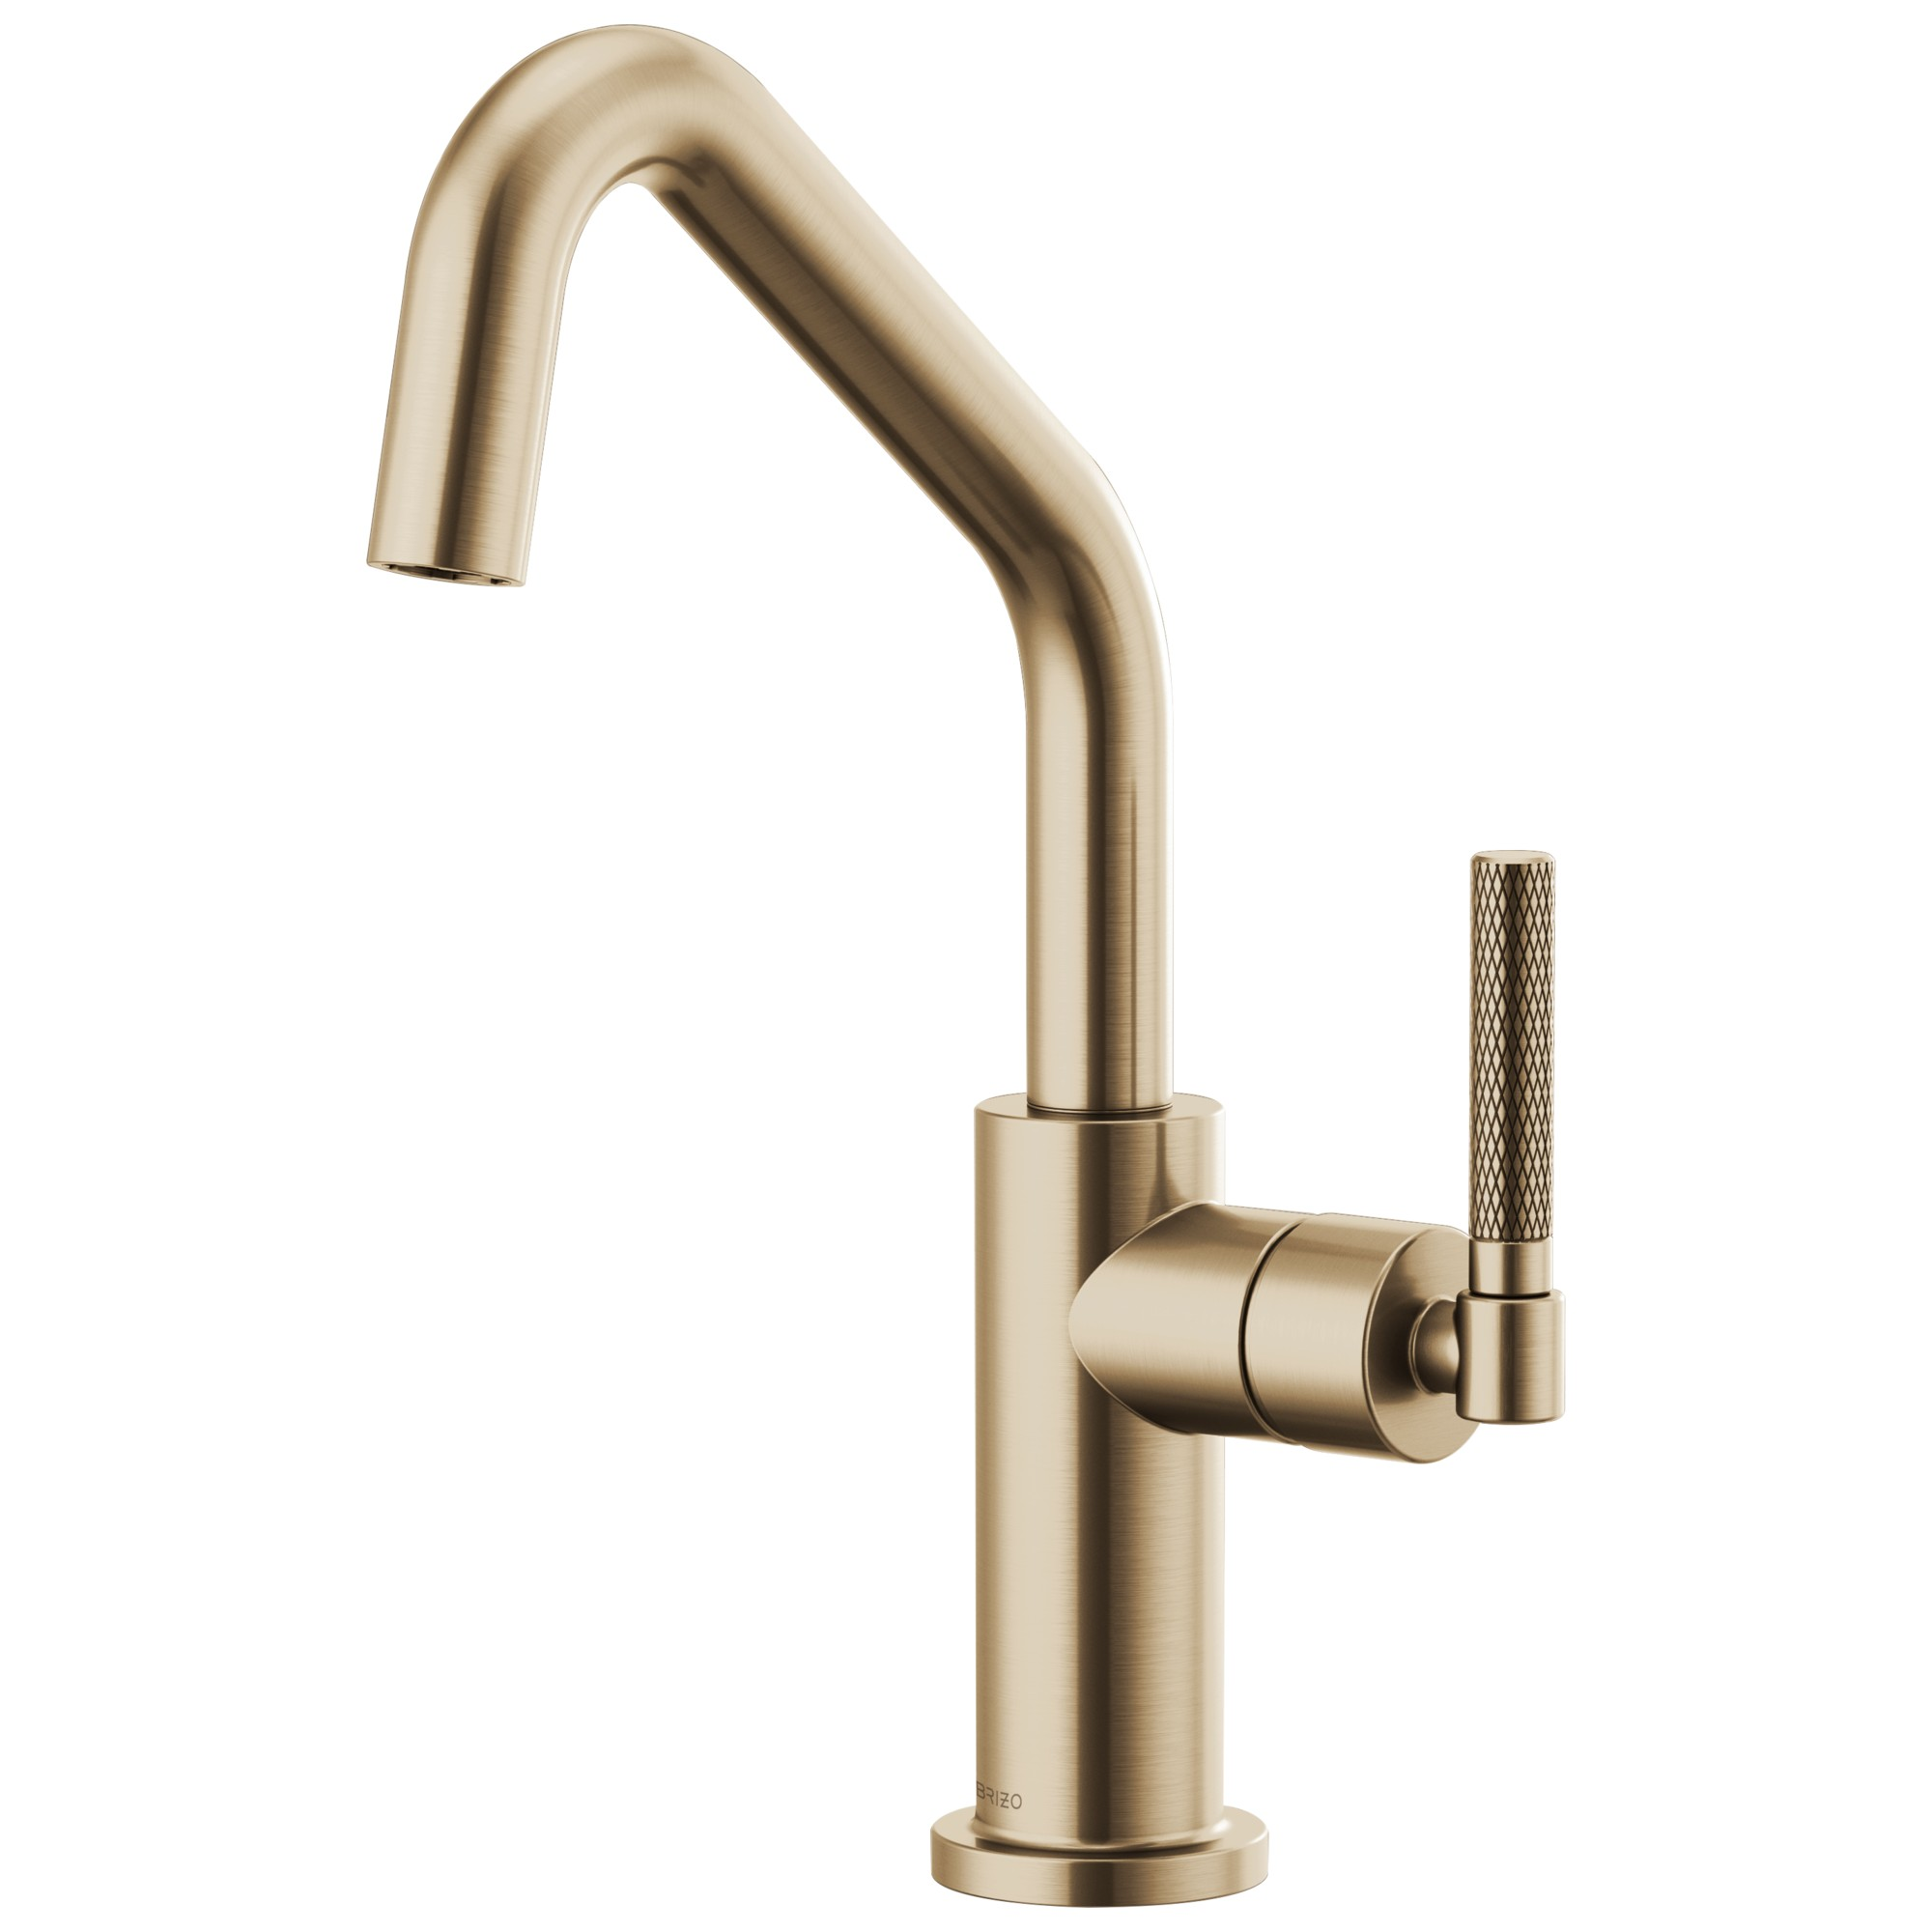 Brizo 61063LF-GL Litze Bar Faucet with Angled Spout and Knurled Handle - Luxe Gold